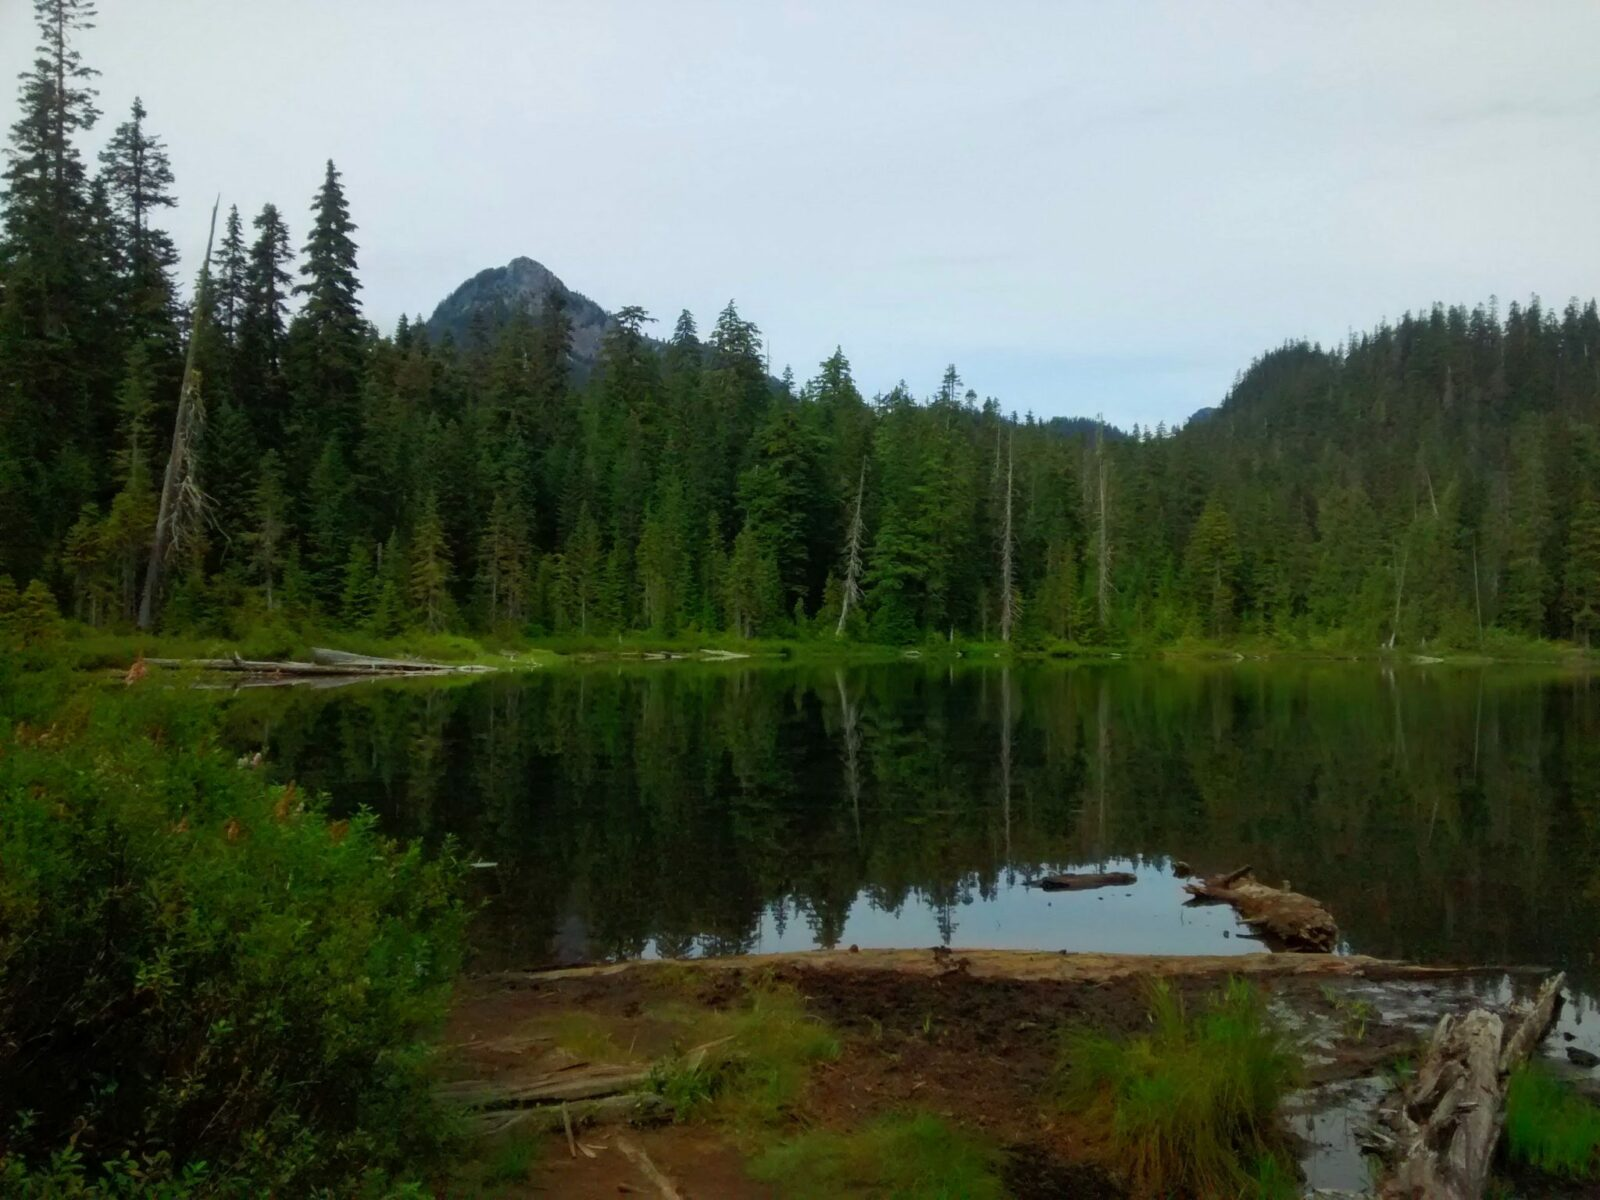 An alpine lake surrounded by evergreen trees. There are a couple of higher mountains visible in the distance